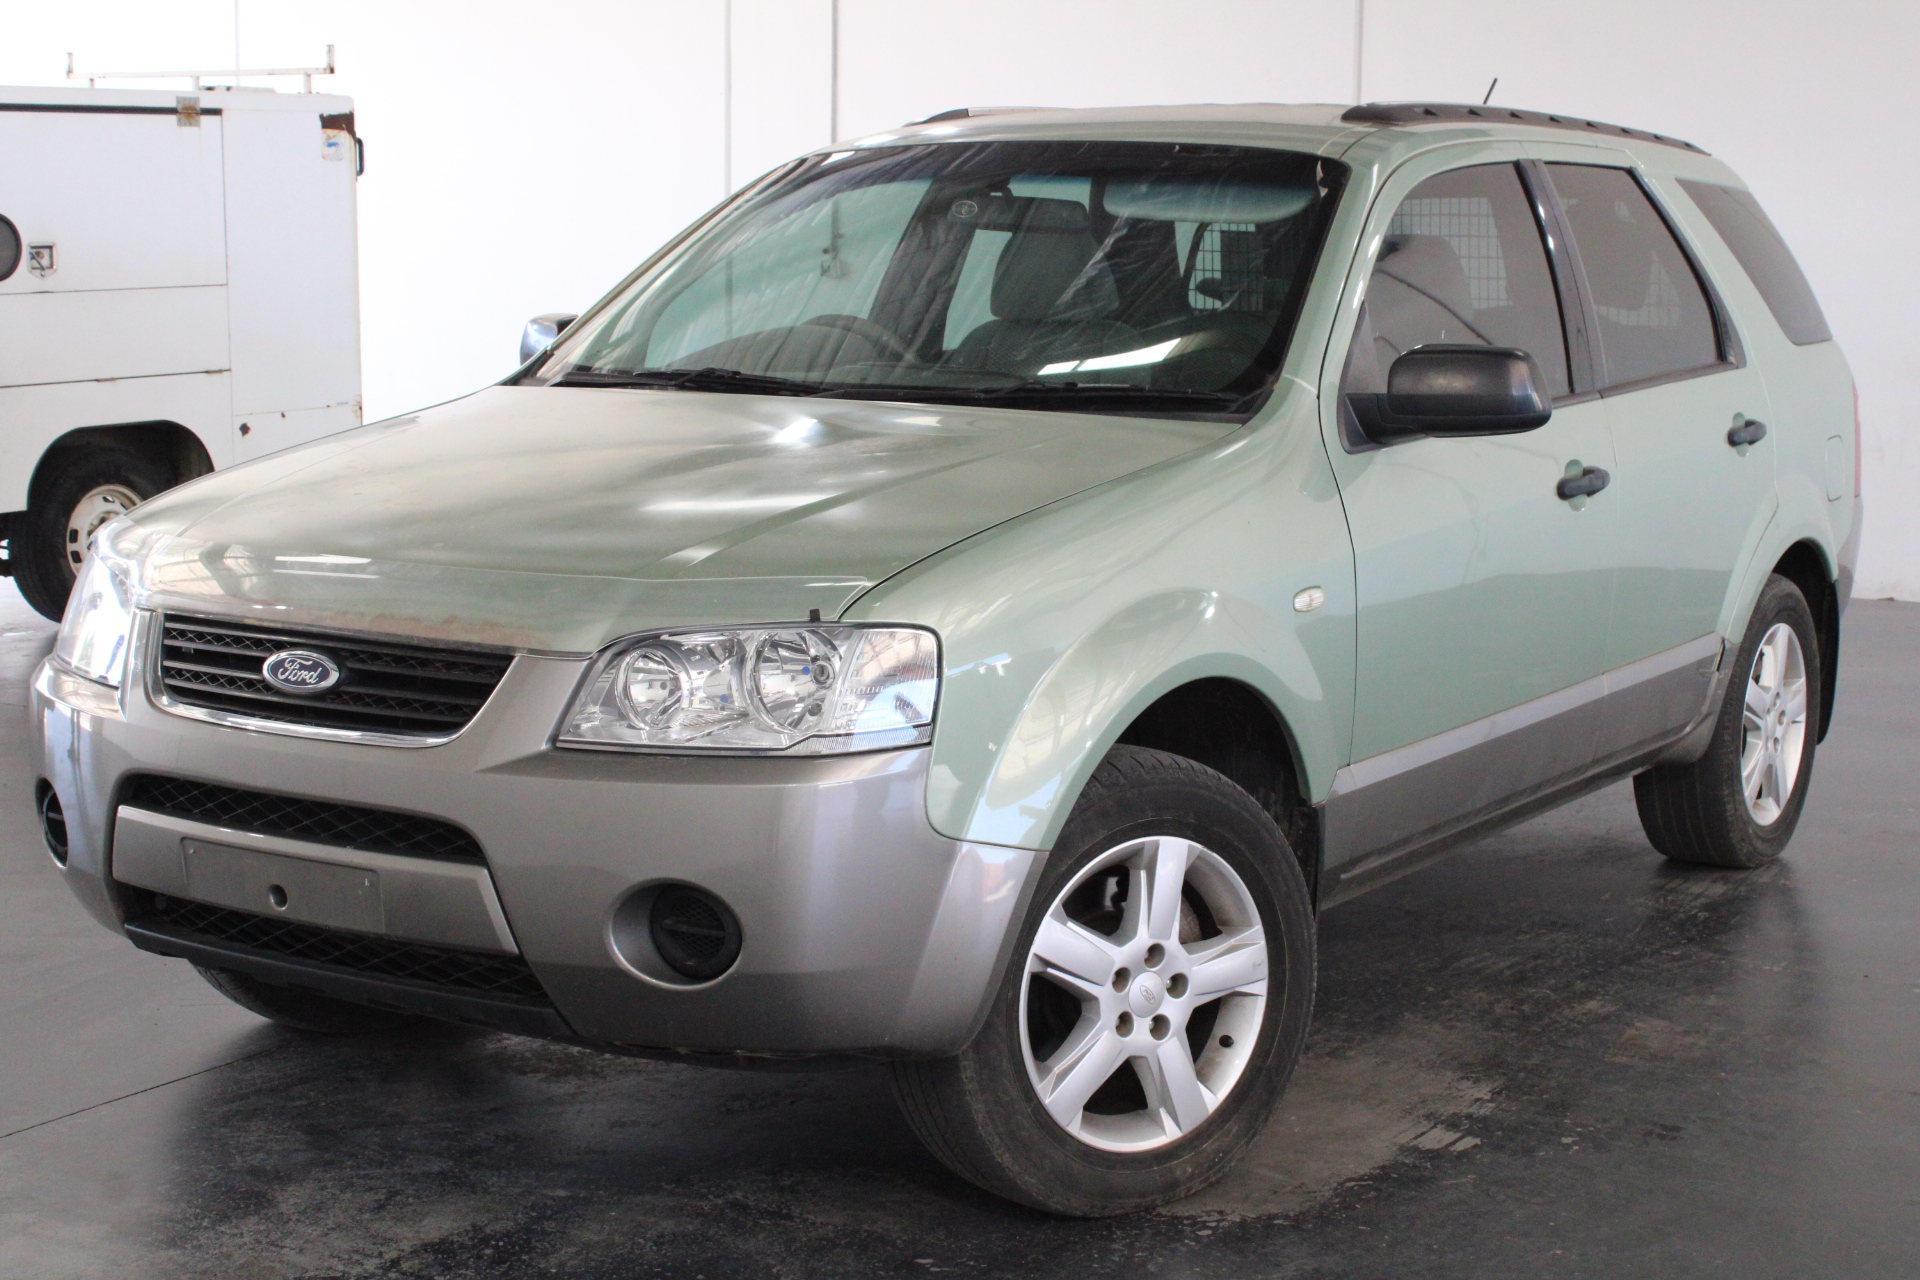 2008 Ford Territory TS (RWD) SY Automatic Wagon